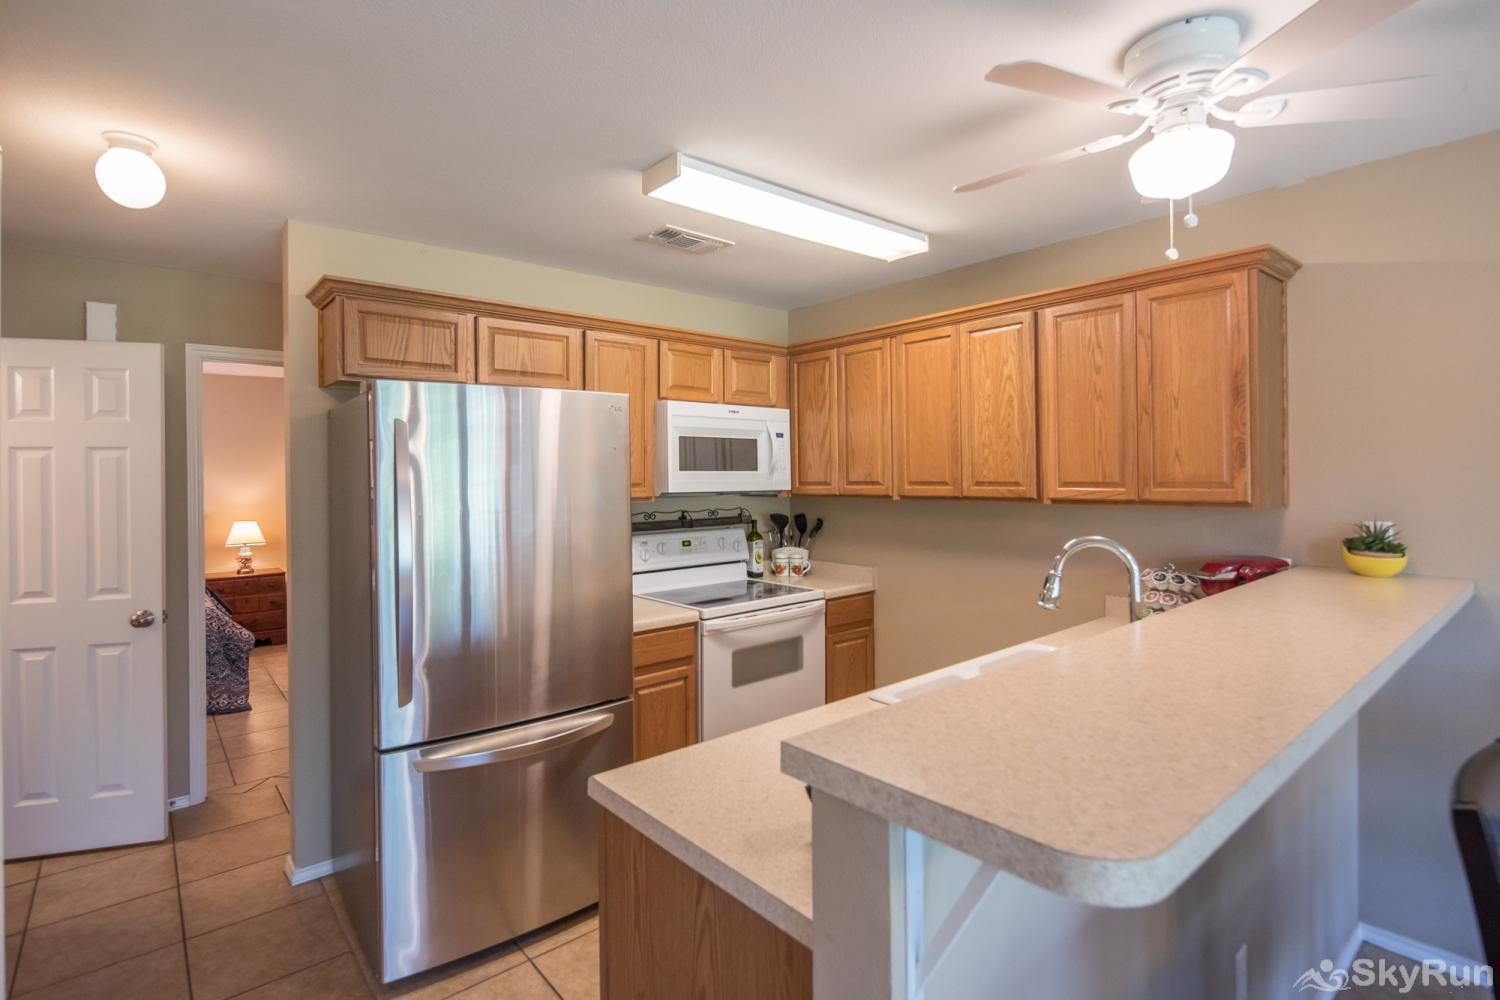 WATERWHEEL ESCAPE CONDO Kitchen Space with Cooking and Dining Essentials